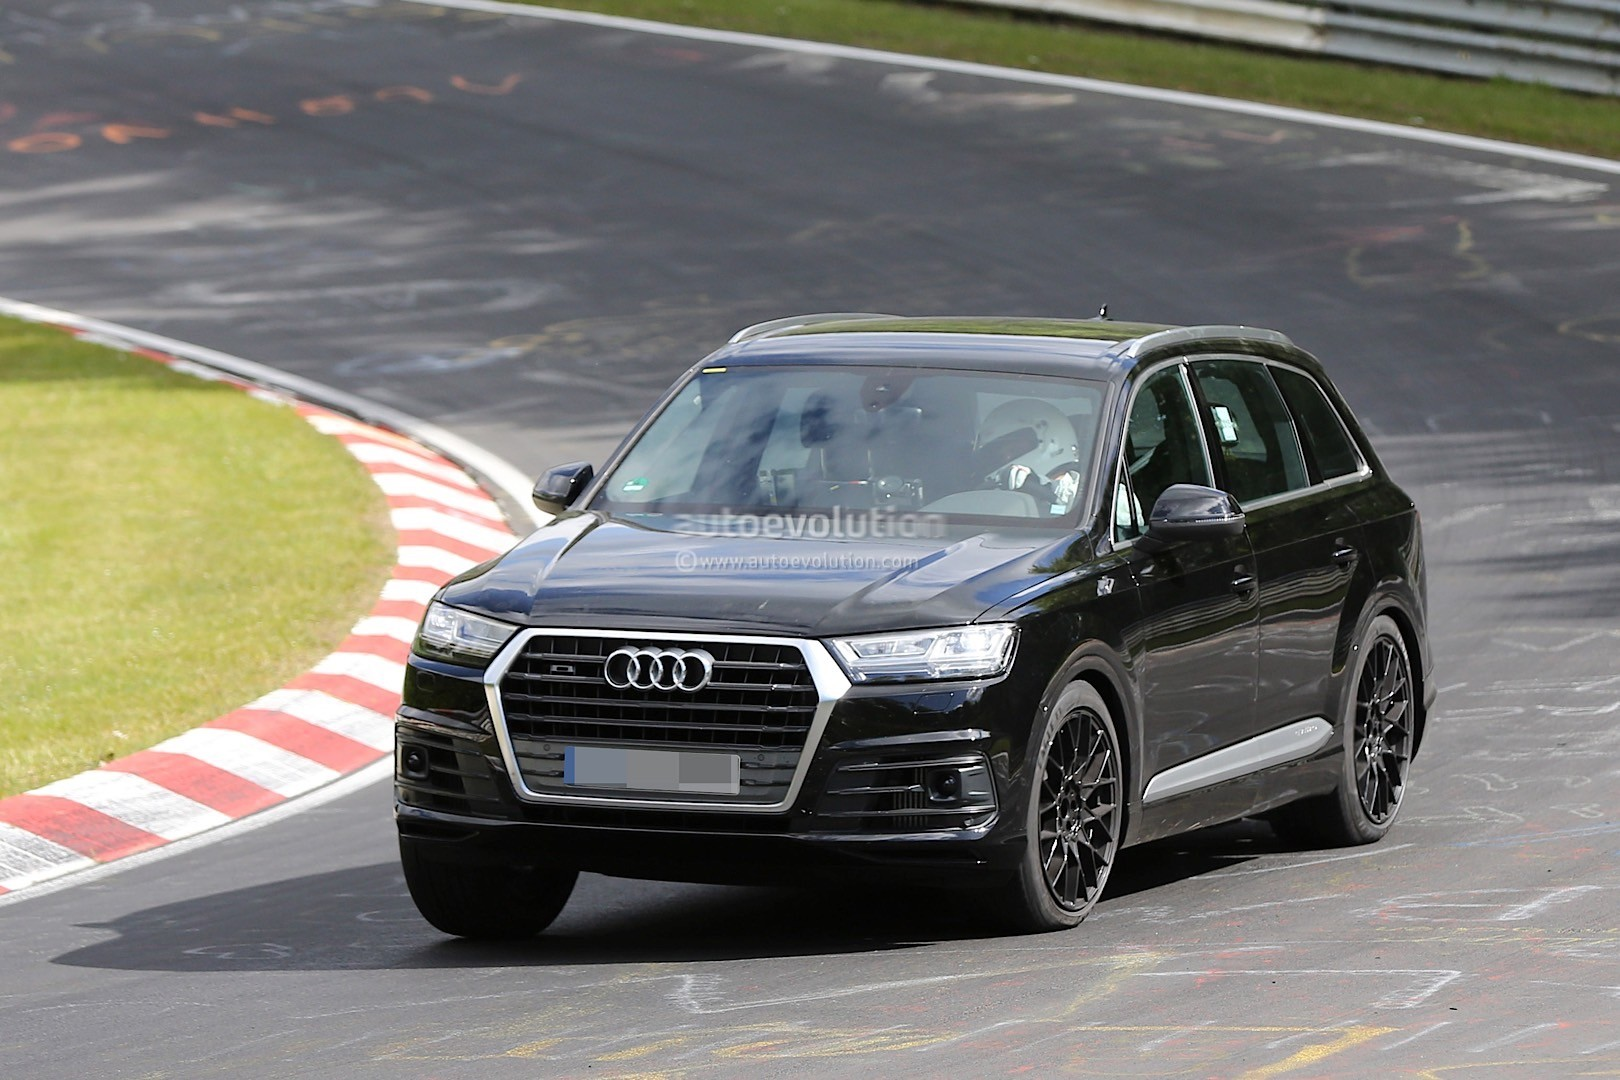 2016 audi sq7 prototype crashes at nurburgring autoevolution. Black Bedroom Furniture Sets. Home Design Ideas